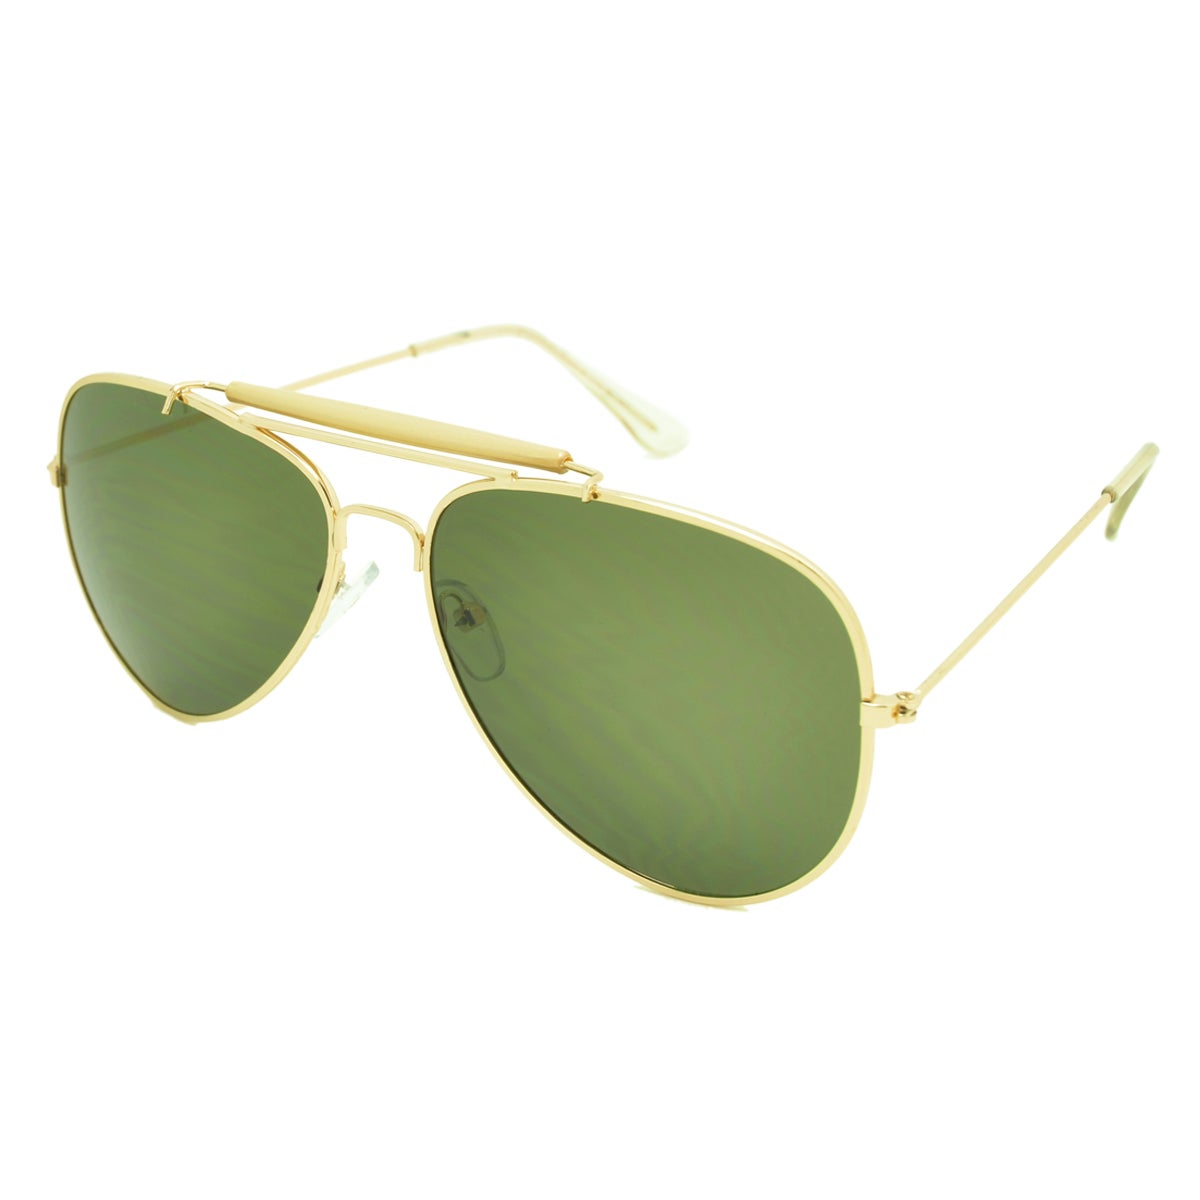 21f229509a1 Shop Dasein Double Bridge Flat Mirror Polarized Lenses Metal Arm Aviator  Sunglasses - On Sale - Free Shipping On Orders Over  45 - Overstock.com -  14172804